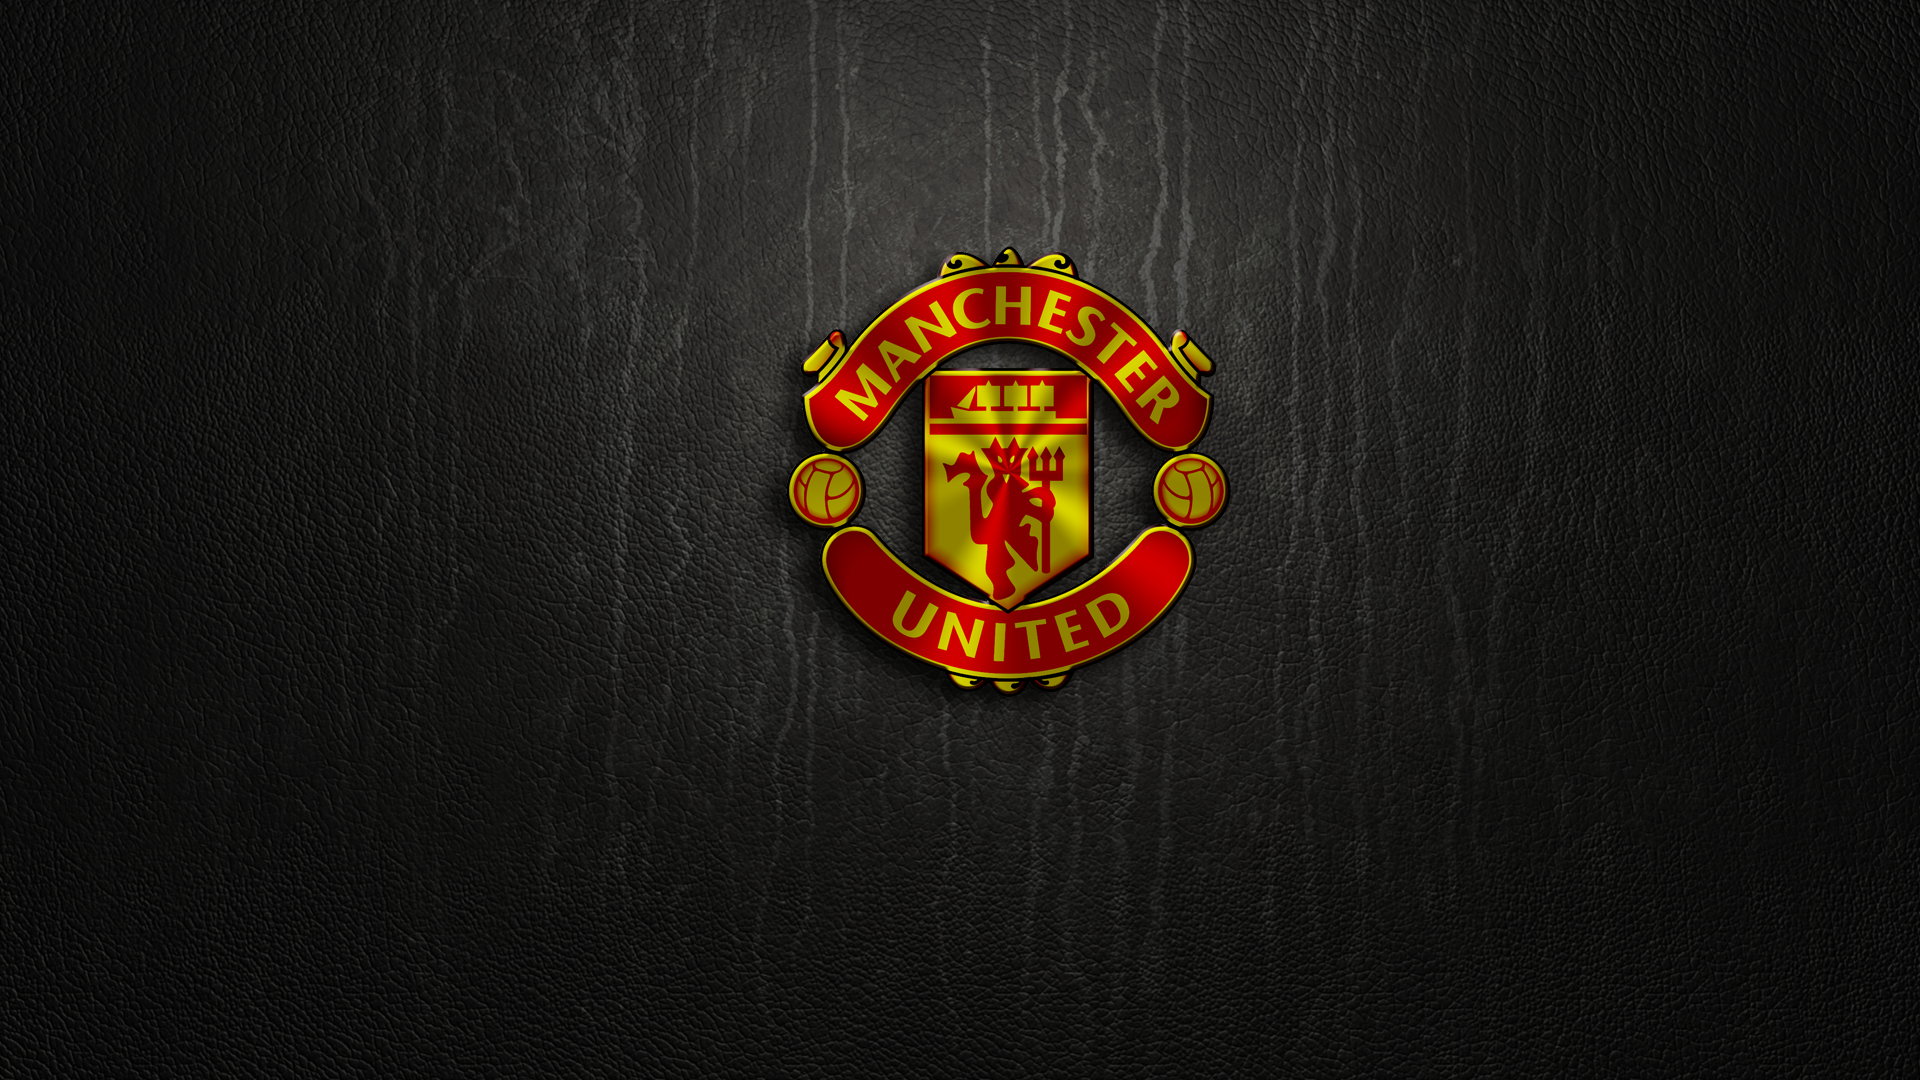 Manchester United Desktop Wallpaper In 2020 Manchester United Wallpaper Manchester United Logo Manchester United